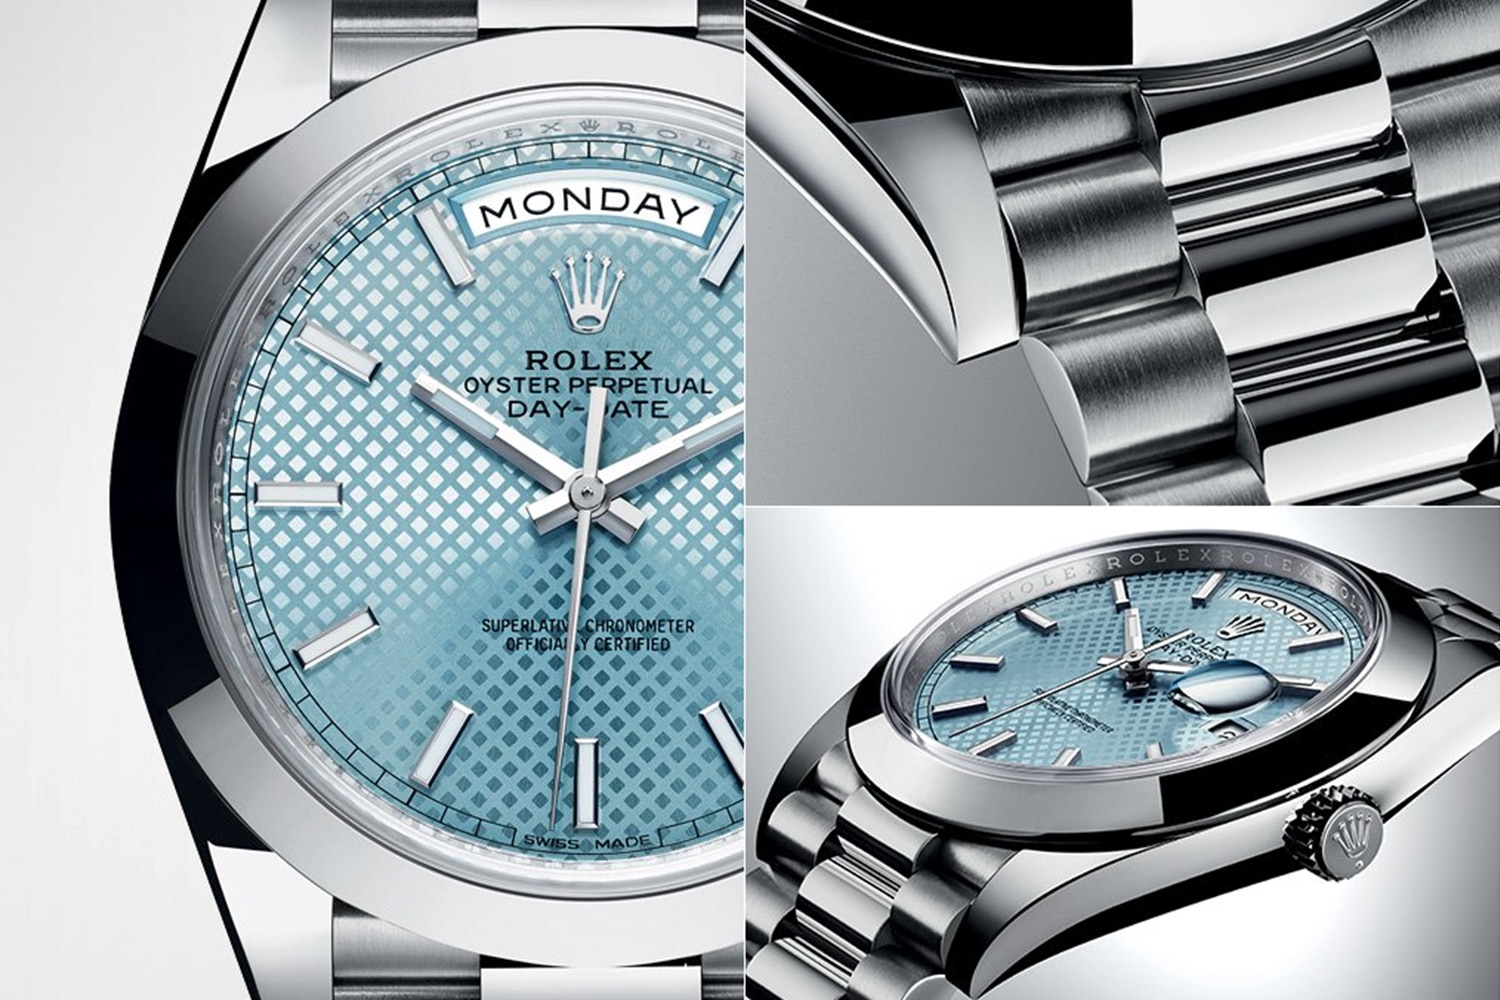 rolex day date 40 watches design